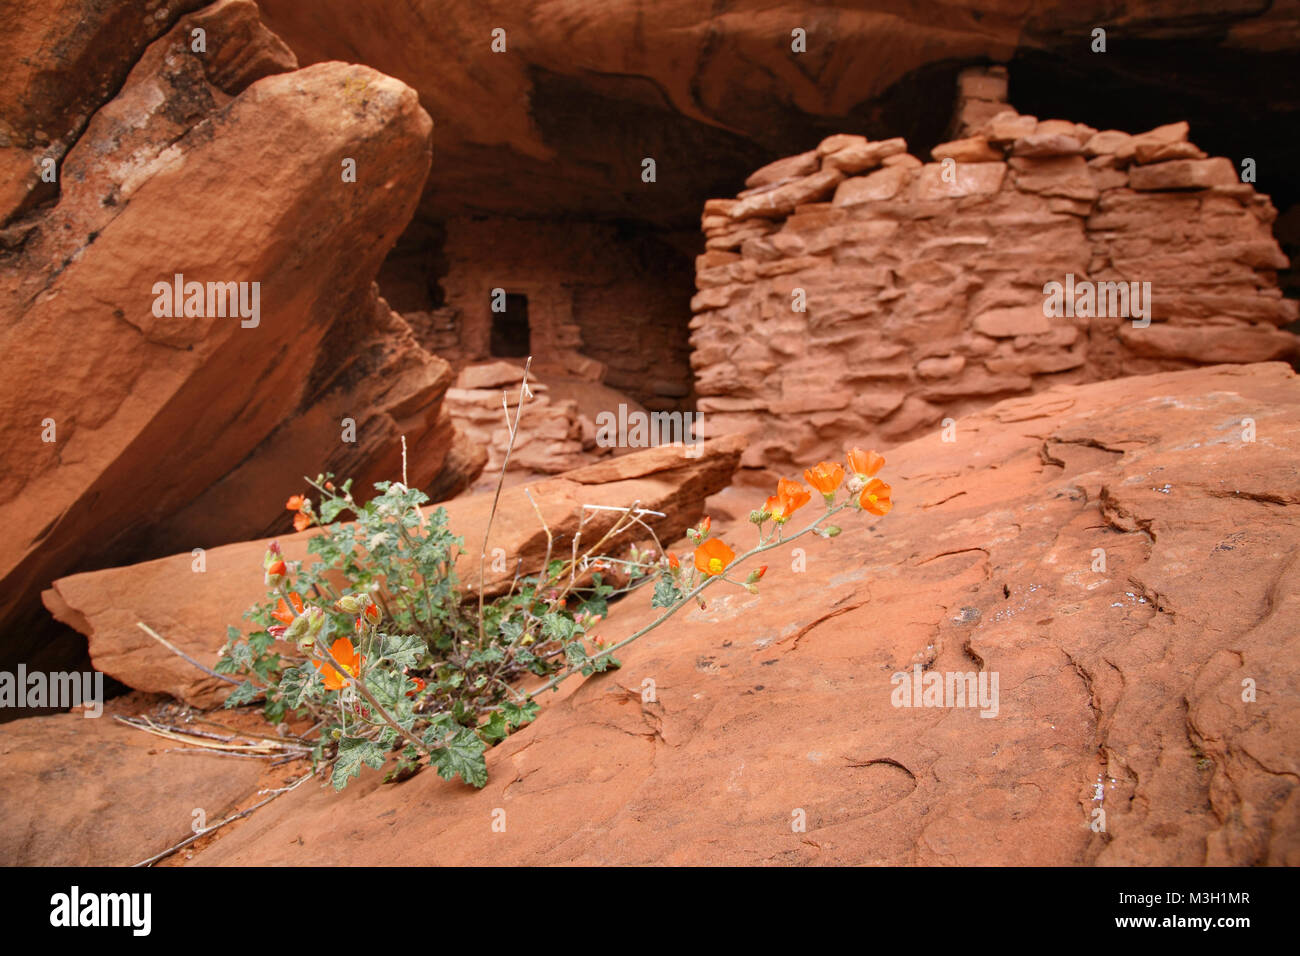 orange mallow wildflowers and indian ruins - Stock Image